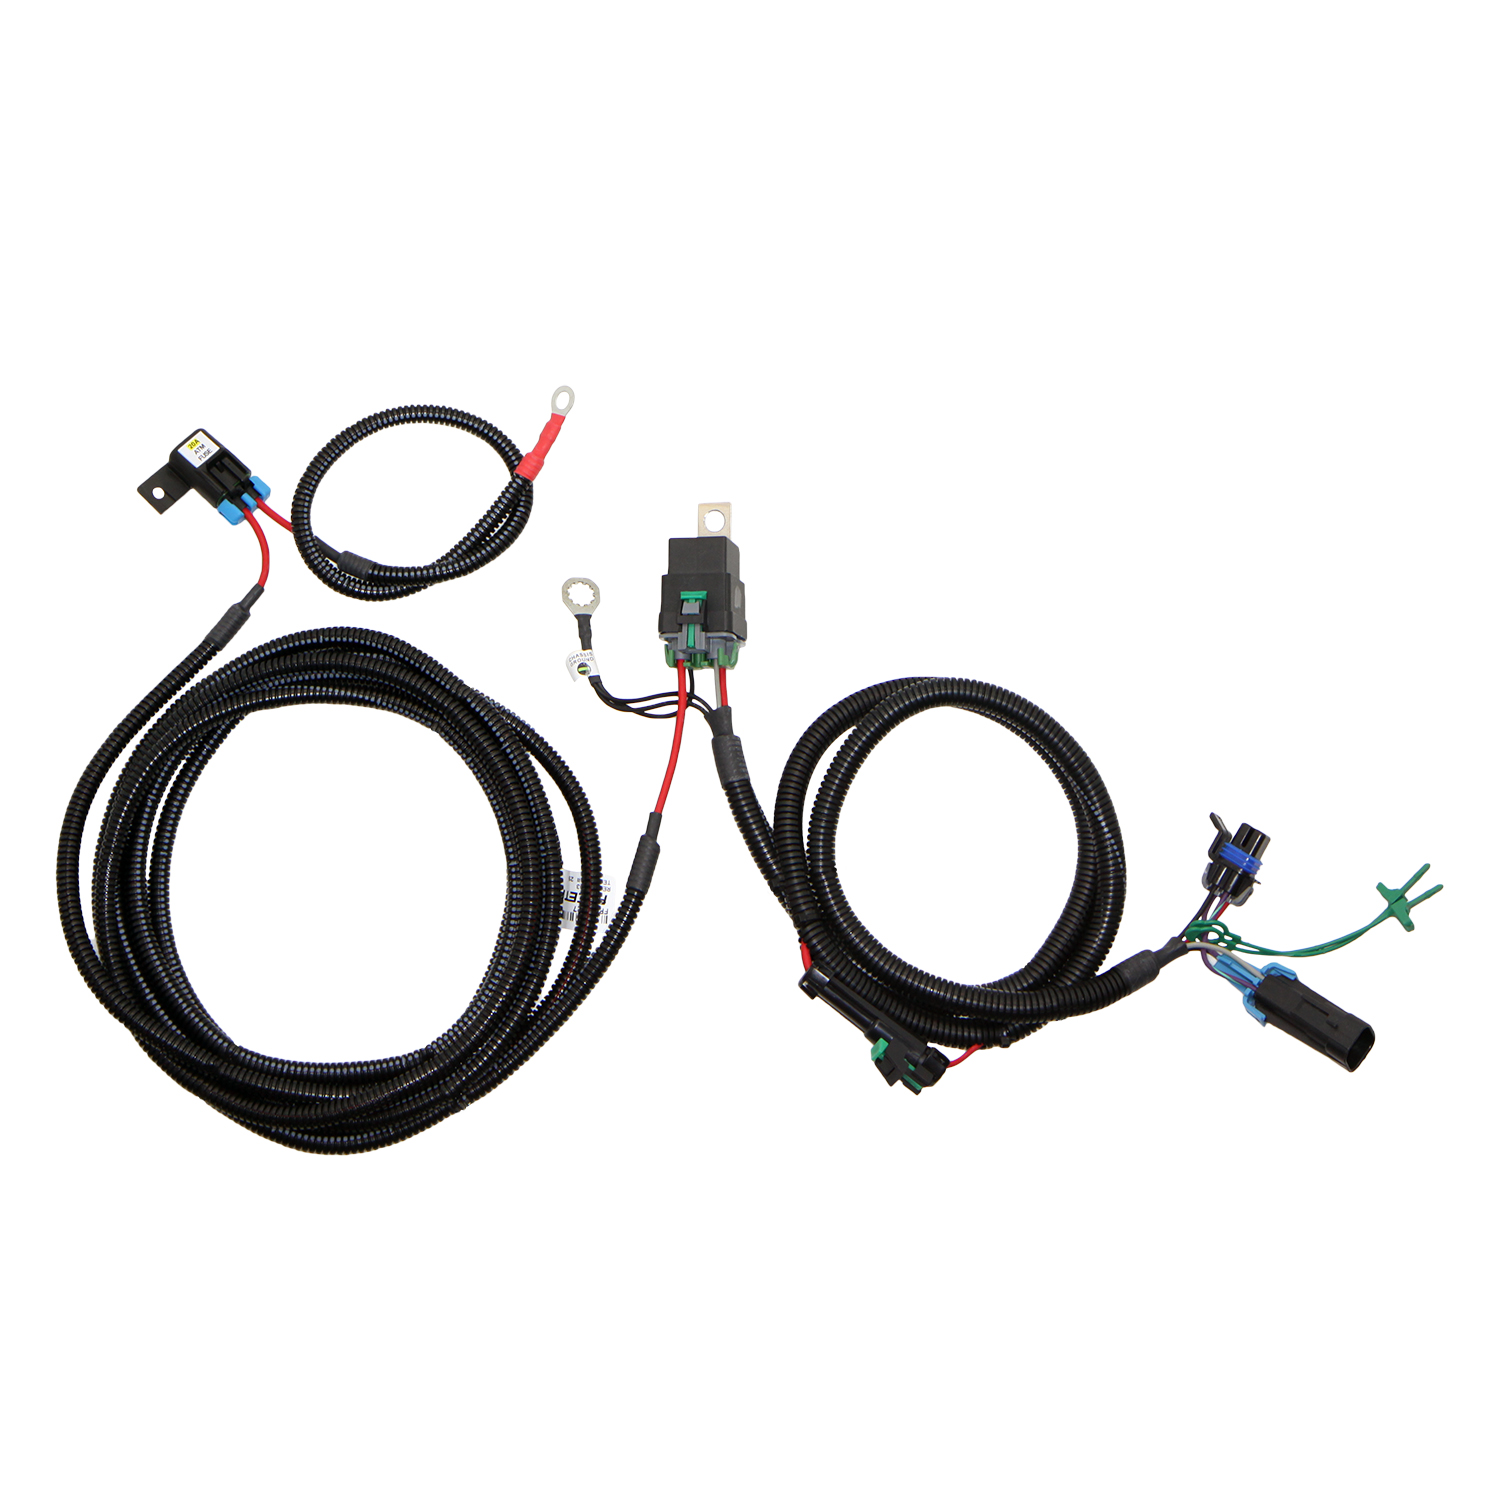 hight resolution of cadillac cts v fuel pump wiring harness fpwh 027 fuel pump direct tech wiring diagrams 2008 cadillac cts